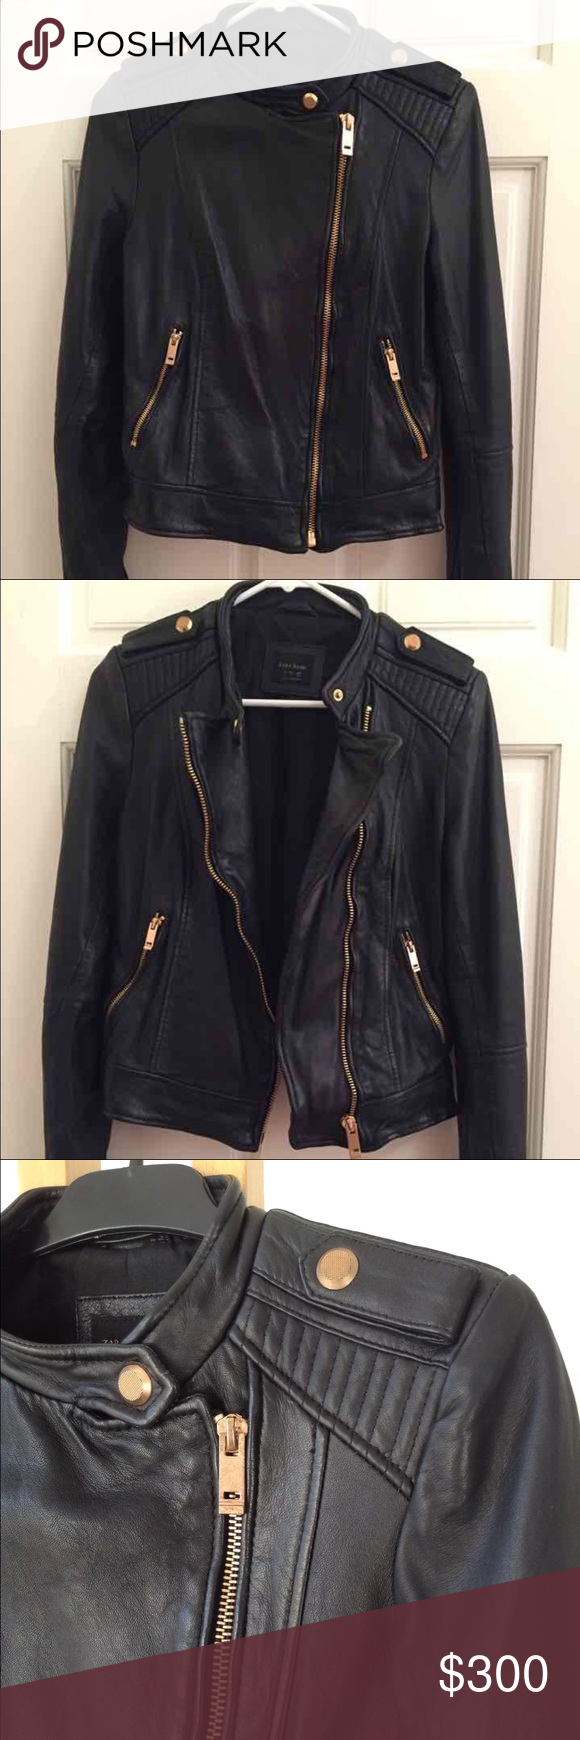 Zara leather jacket 100 real leather with gold hardware